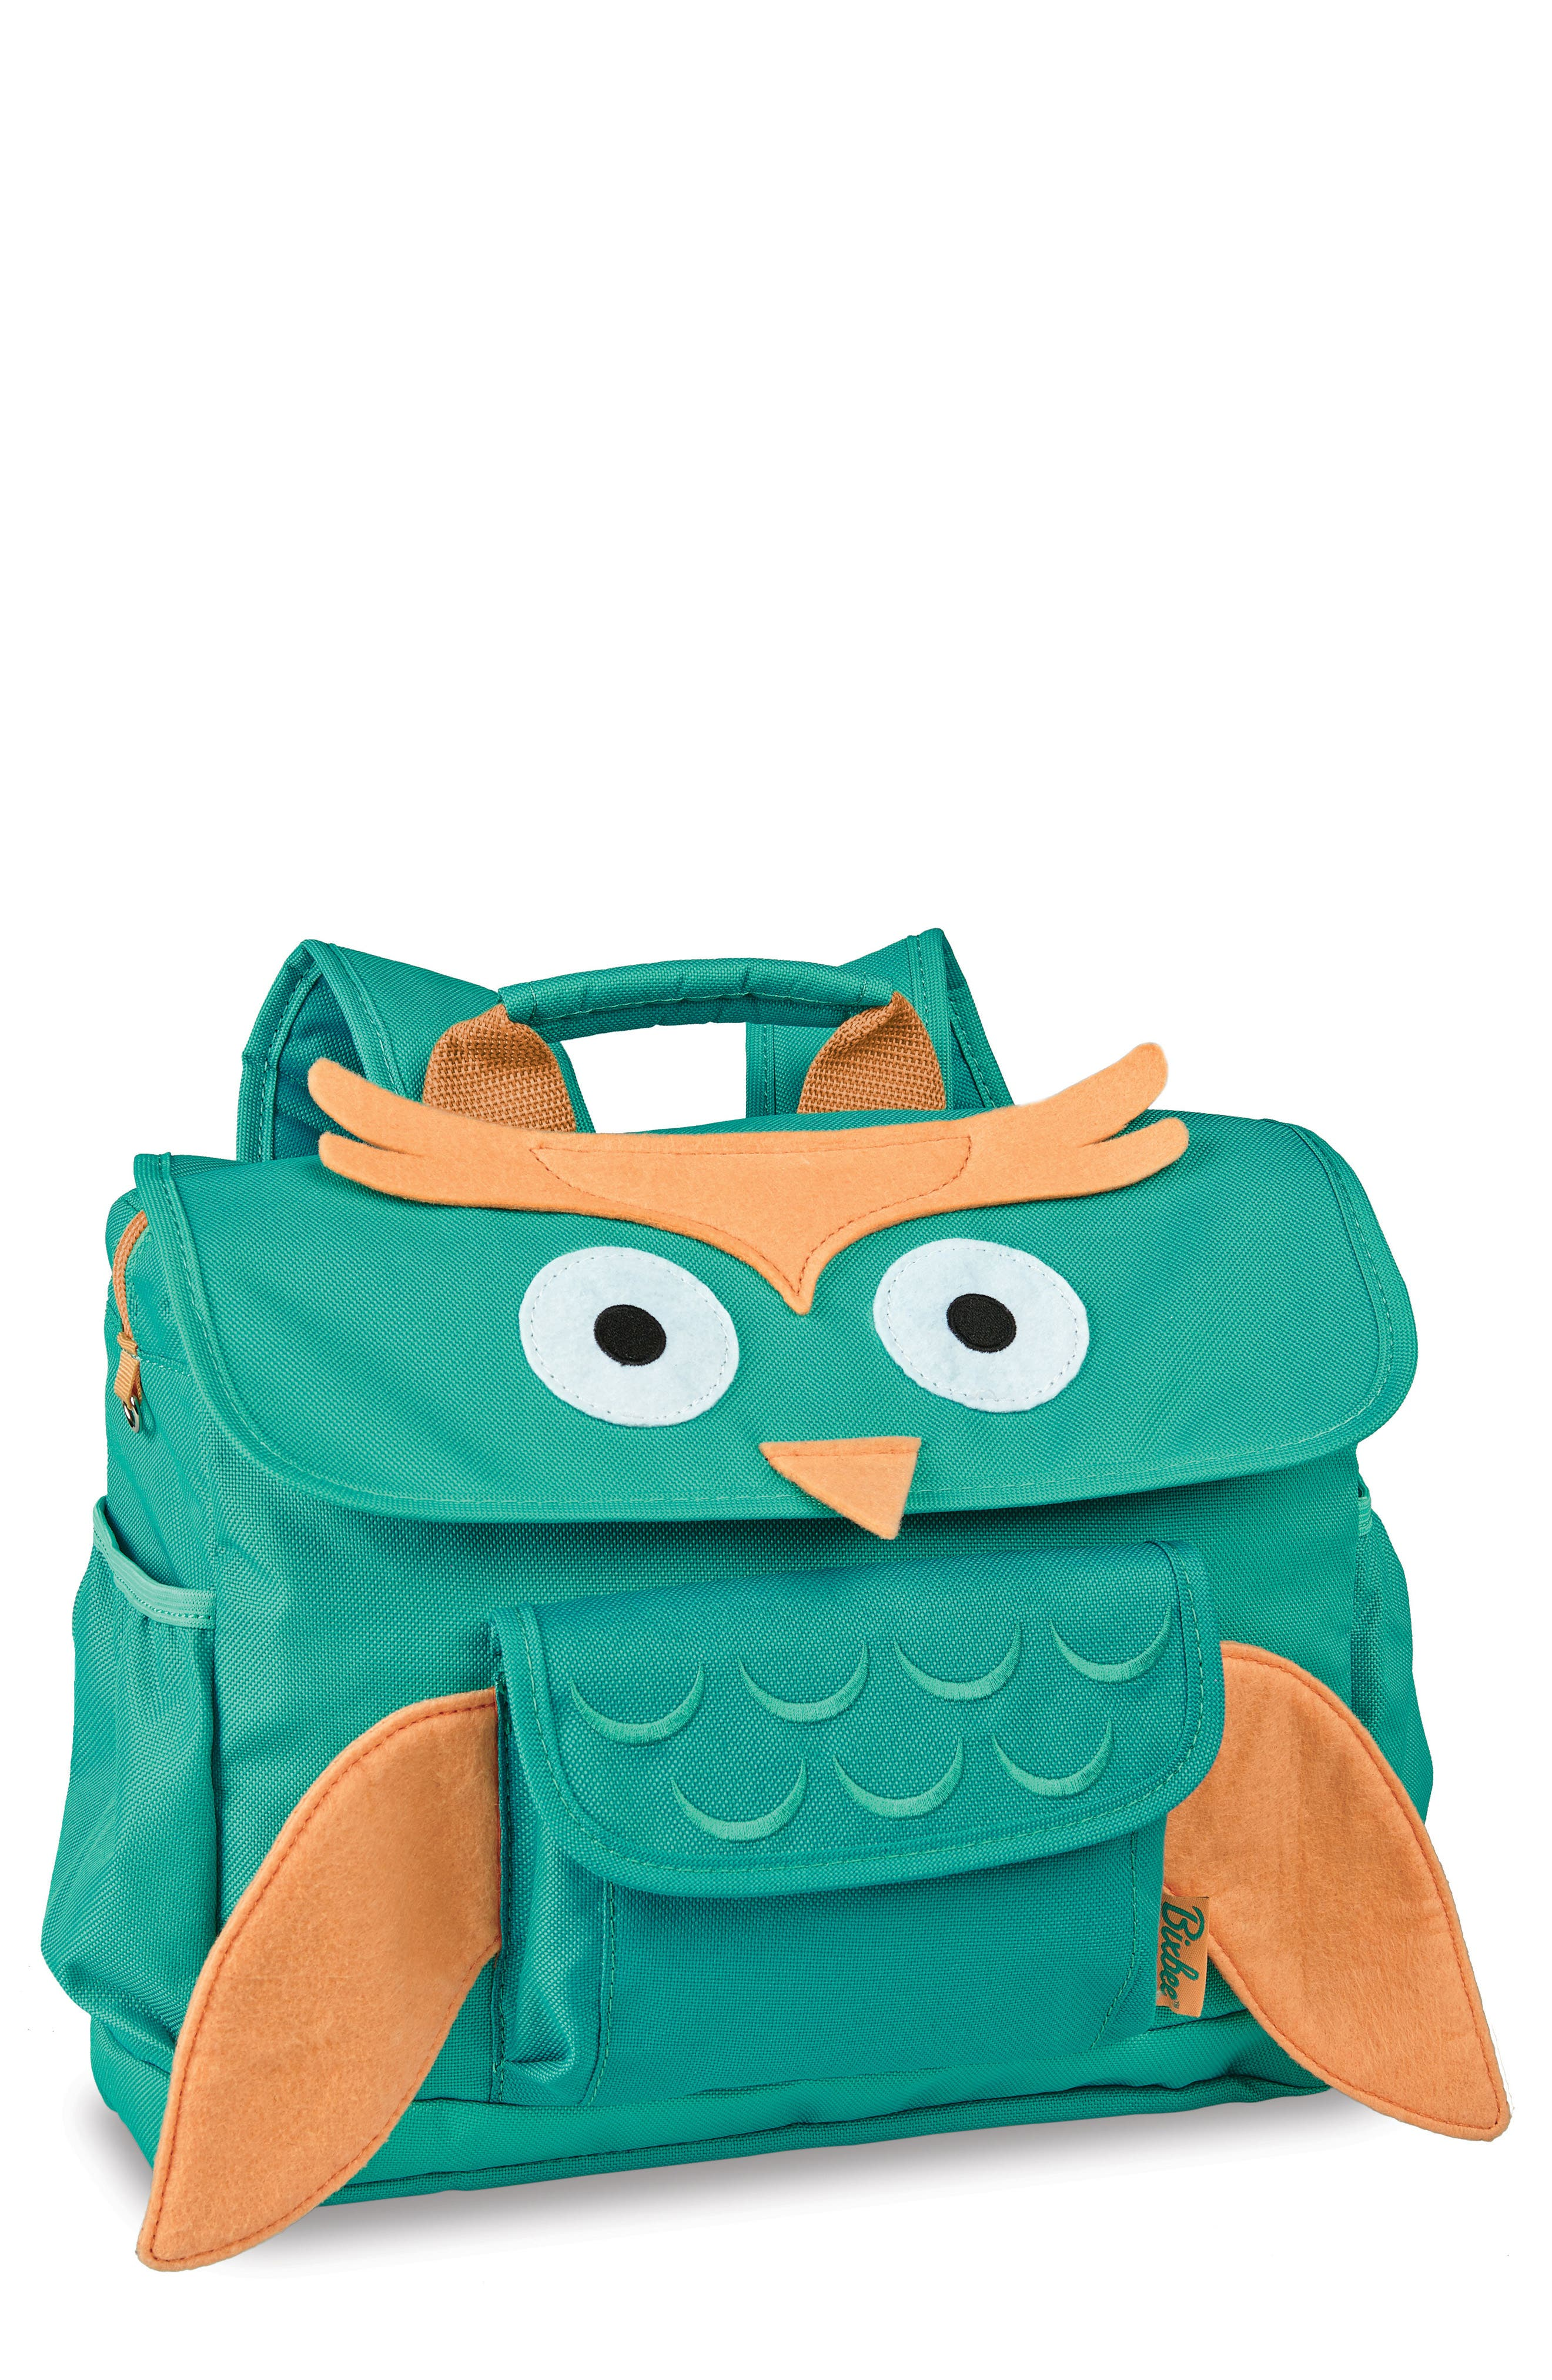 Animal Pack – Owl Backpack,                         Main,                         color, 440